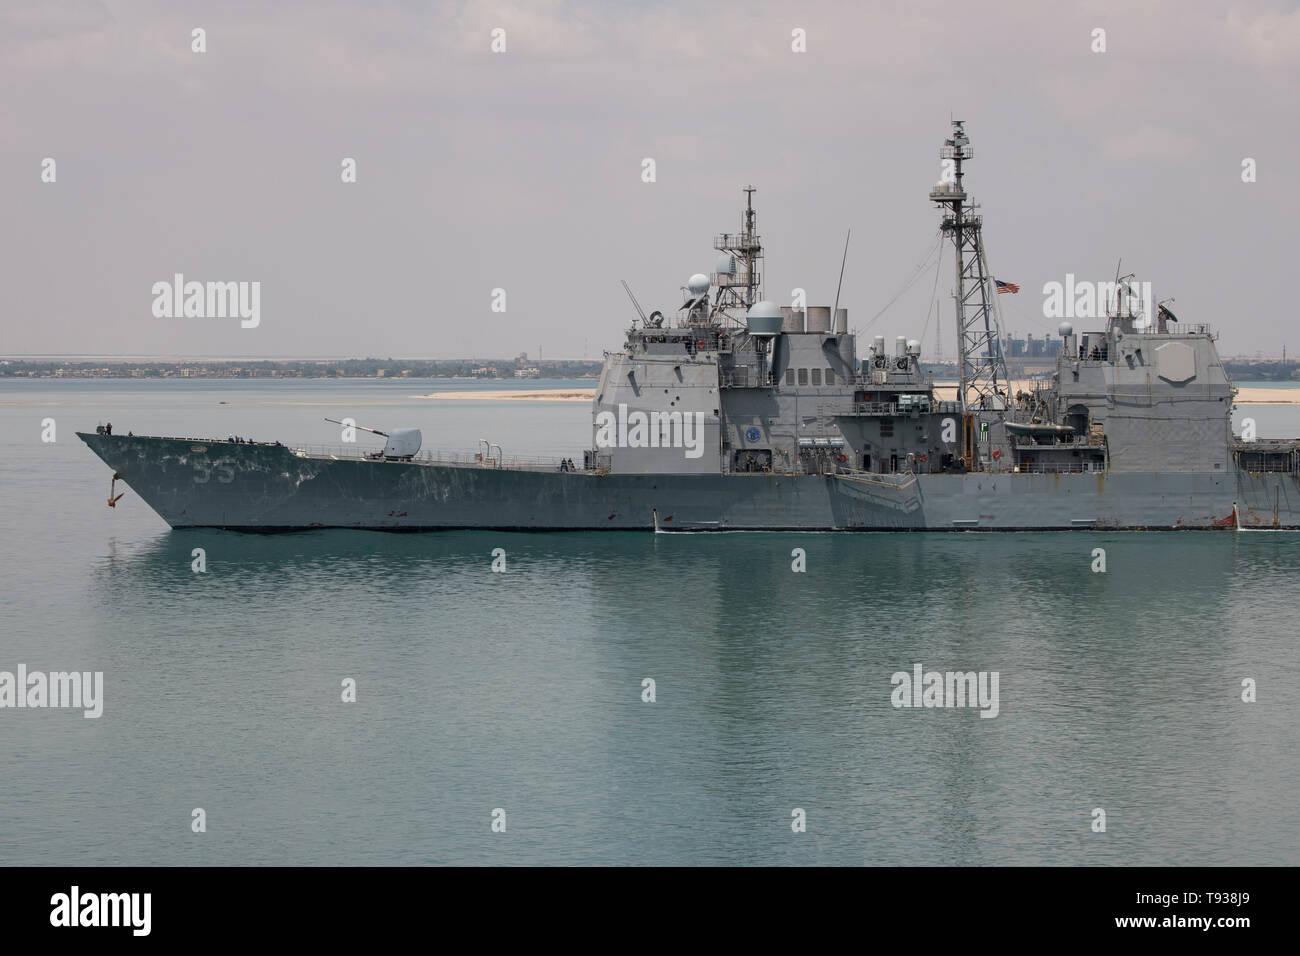 Egypt, Suez Canal. US military ships transiting the Suez Canal May 9, 2019. Ticonderoga-class guided-missile cruiser USS Leyte Gulf (CG 55). Stock Photo